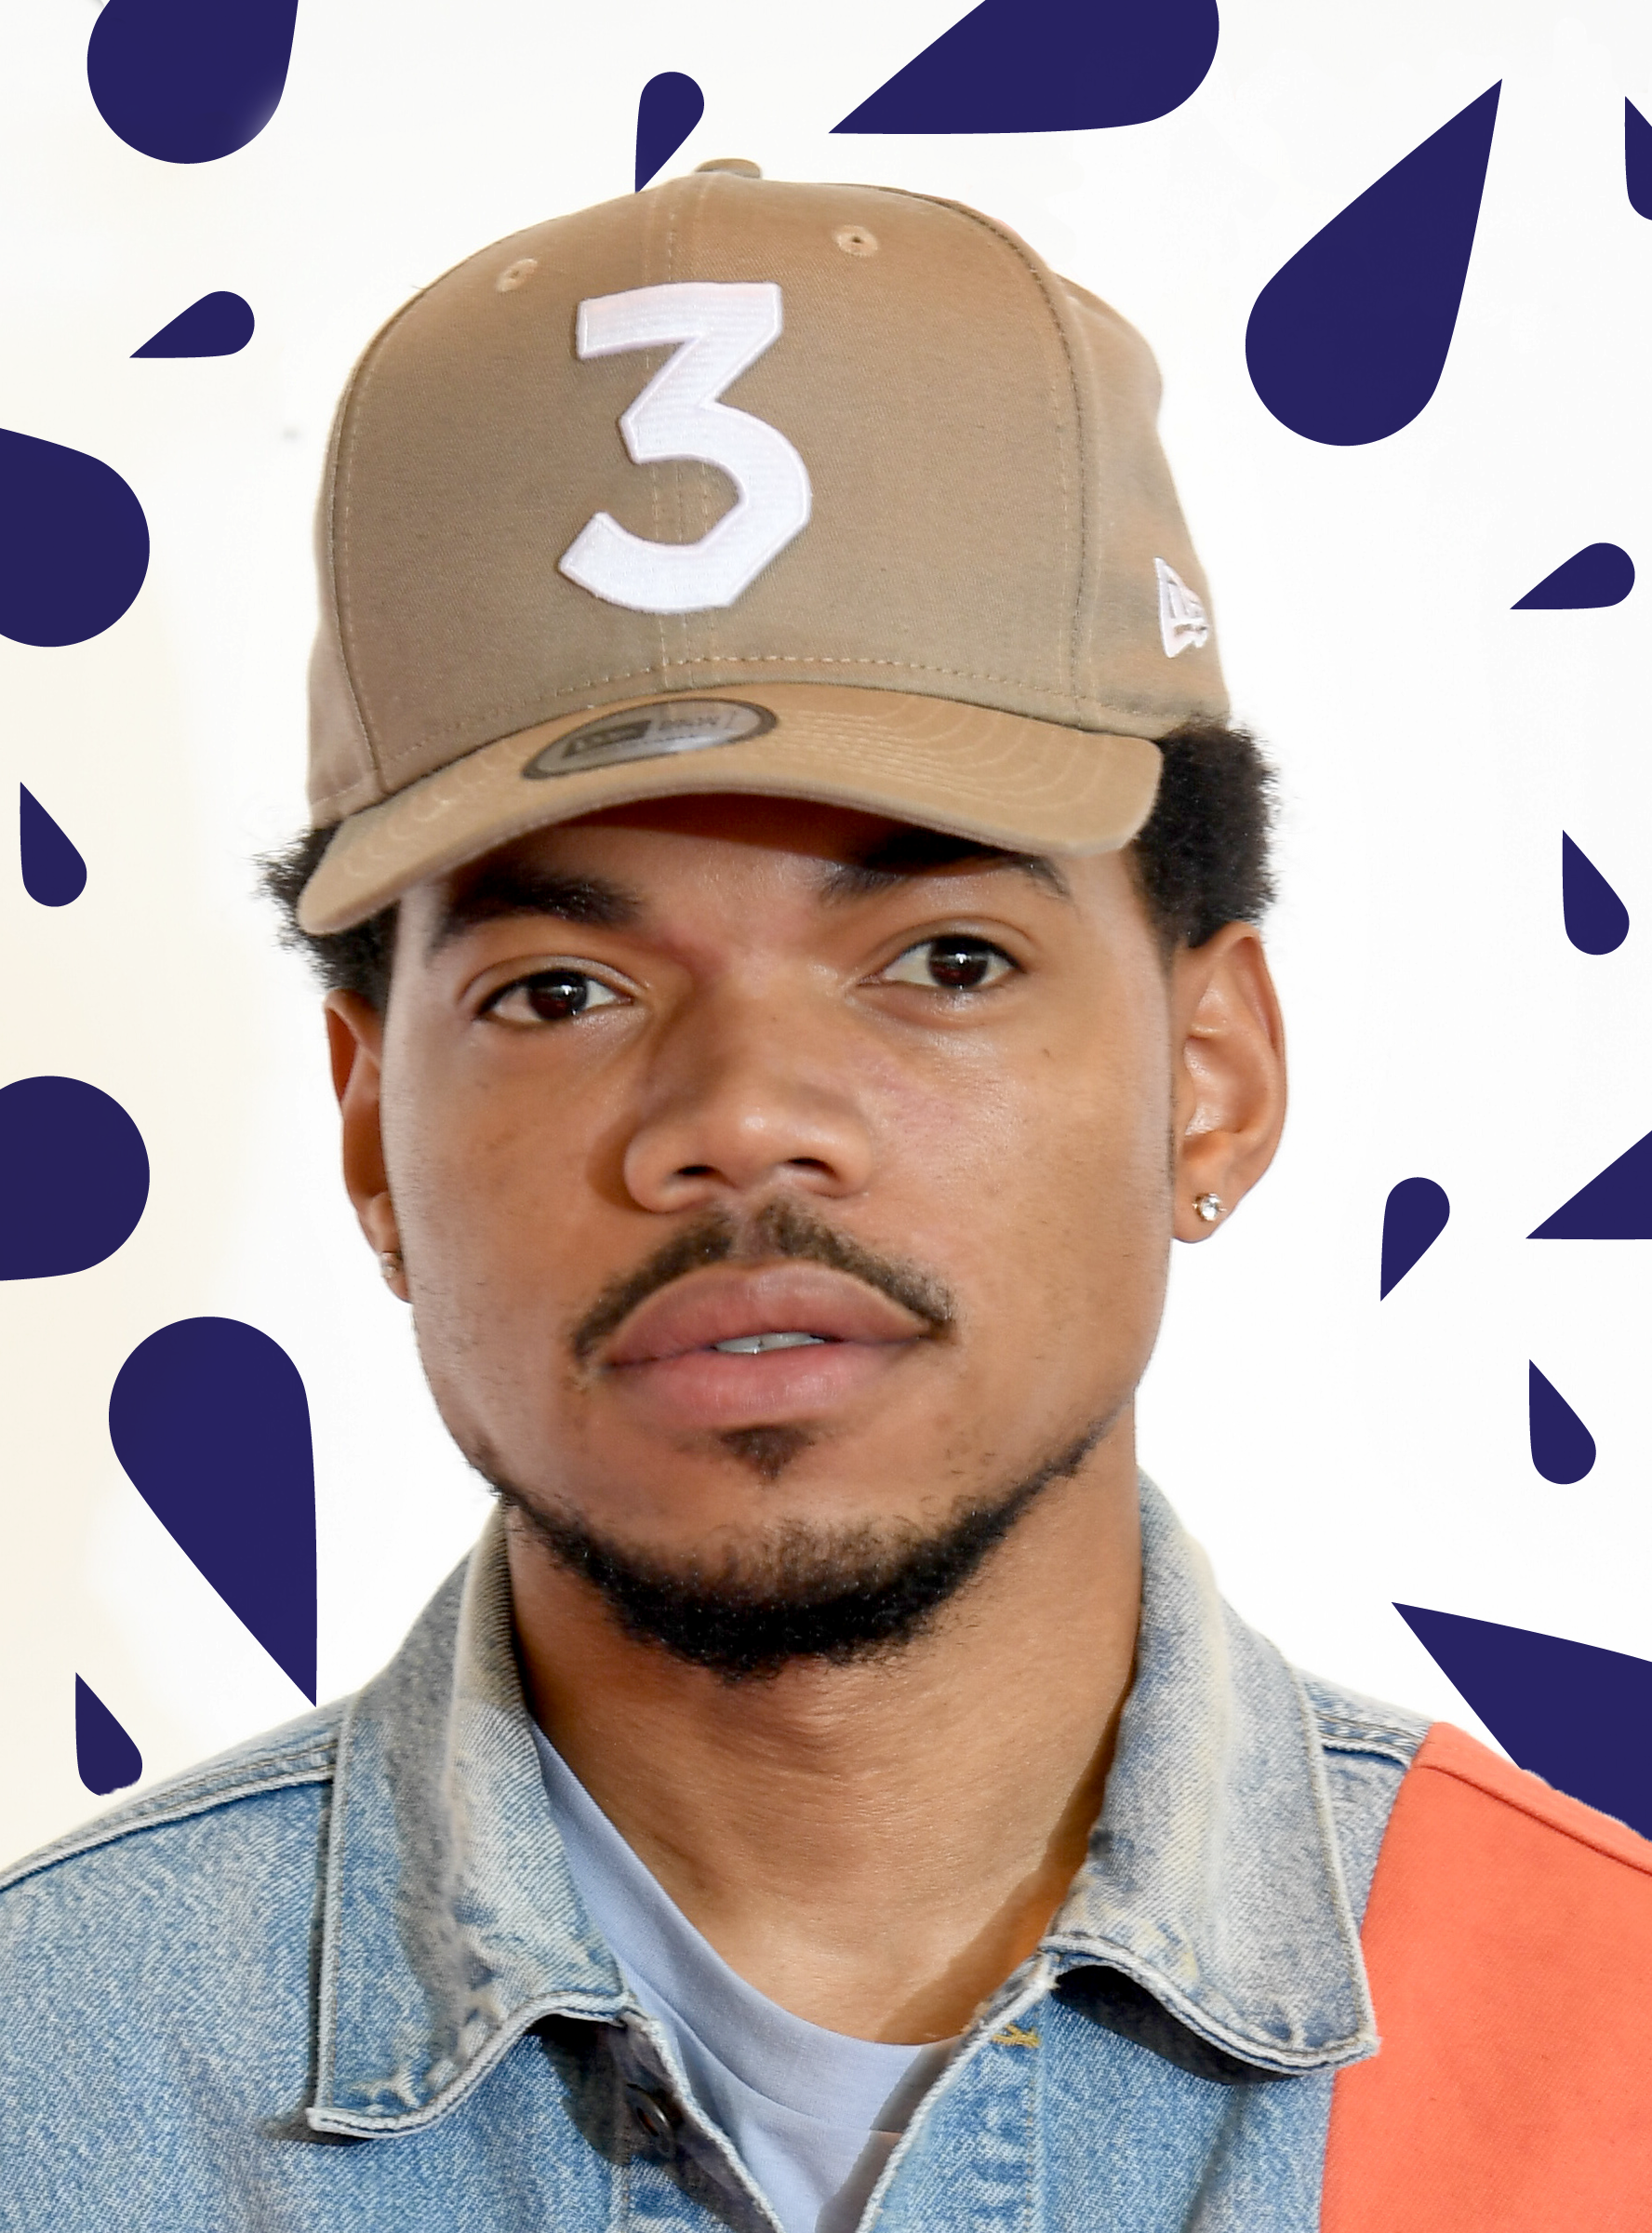 Chance The Rapper Urges Hbo To Cancel Bill Maher Following On Air Racial Slur Chance The Rapper Chance The Rapper Wallpaper Rapper